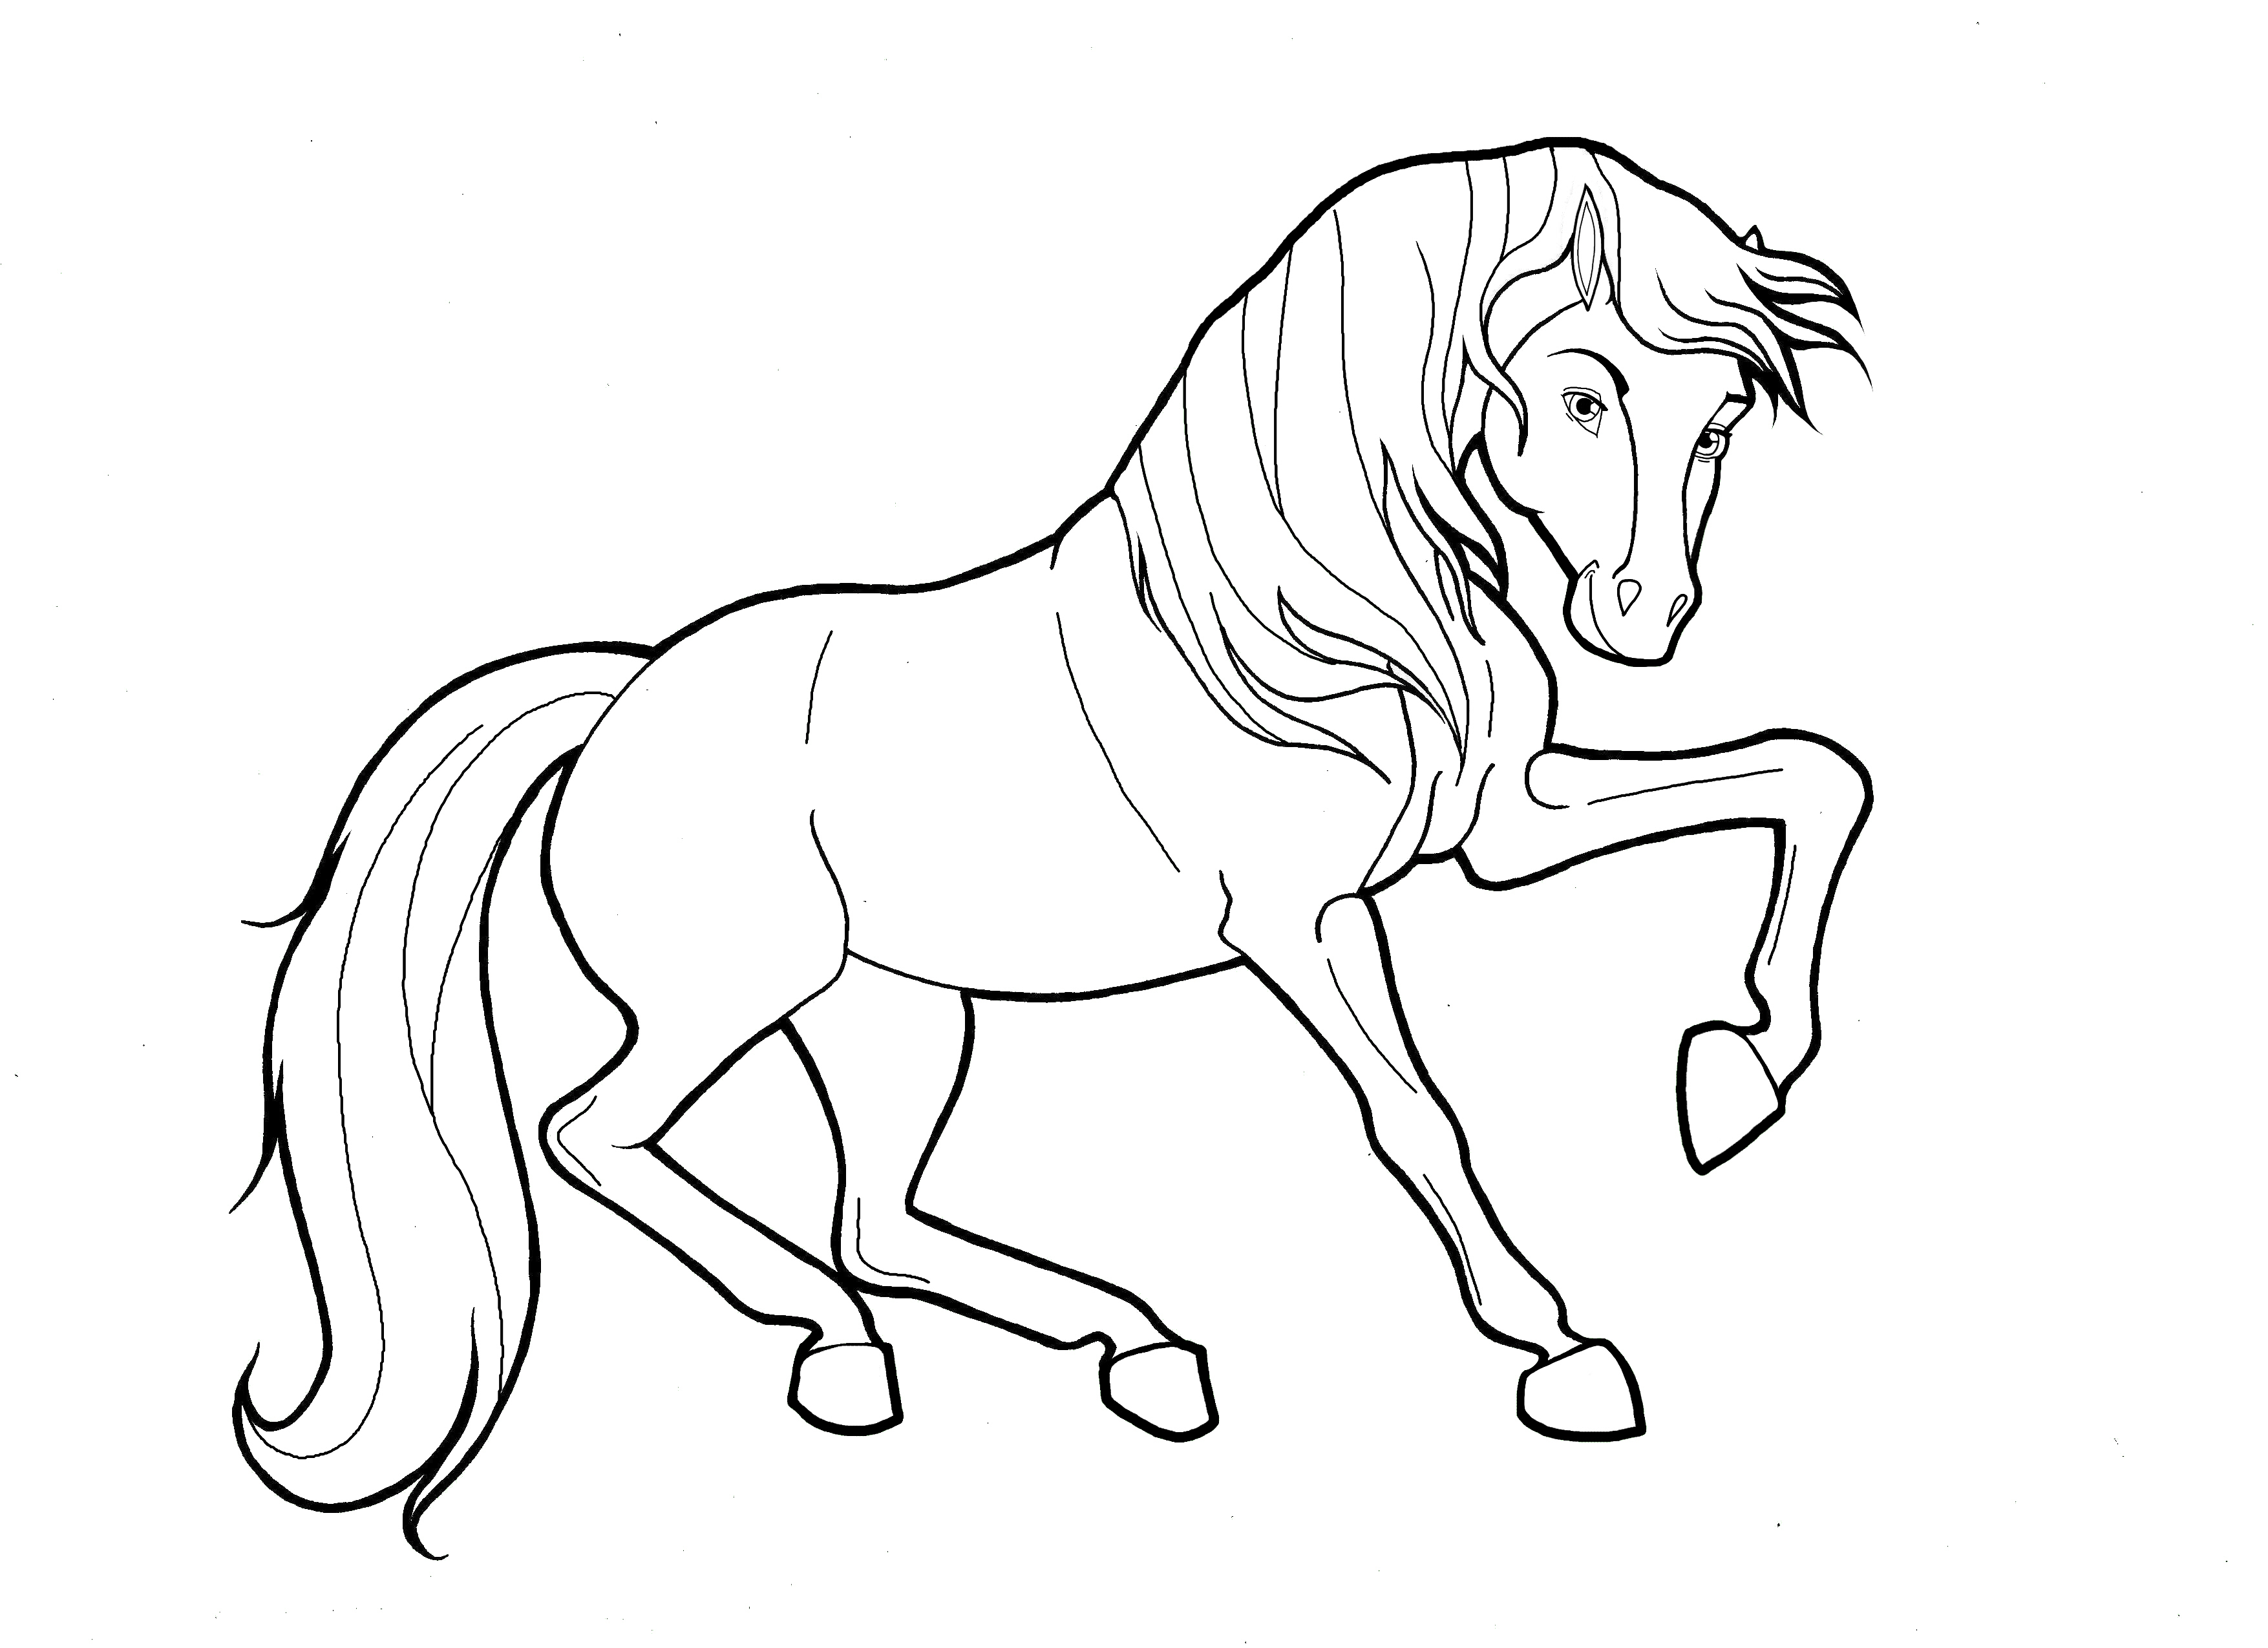 horse color pages horse coloring pages for kids coloring pages for kids pages color horse